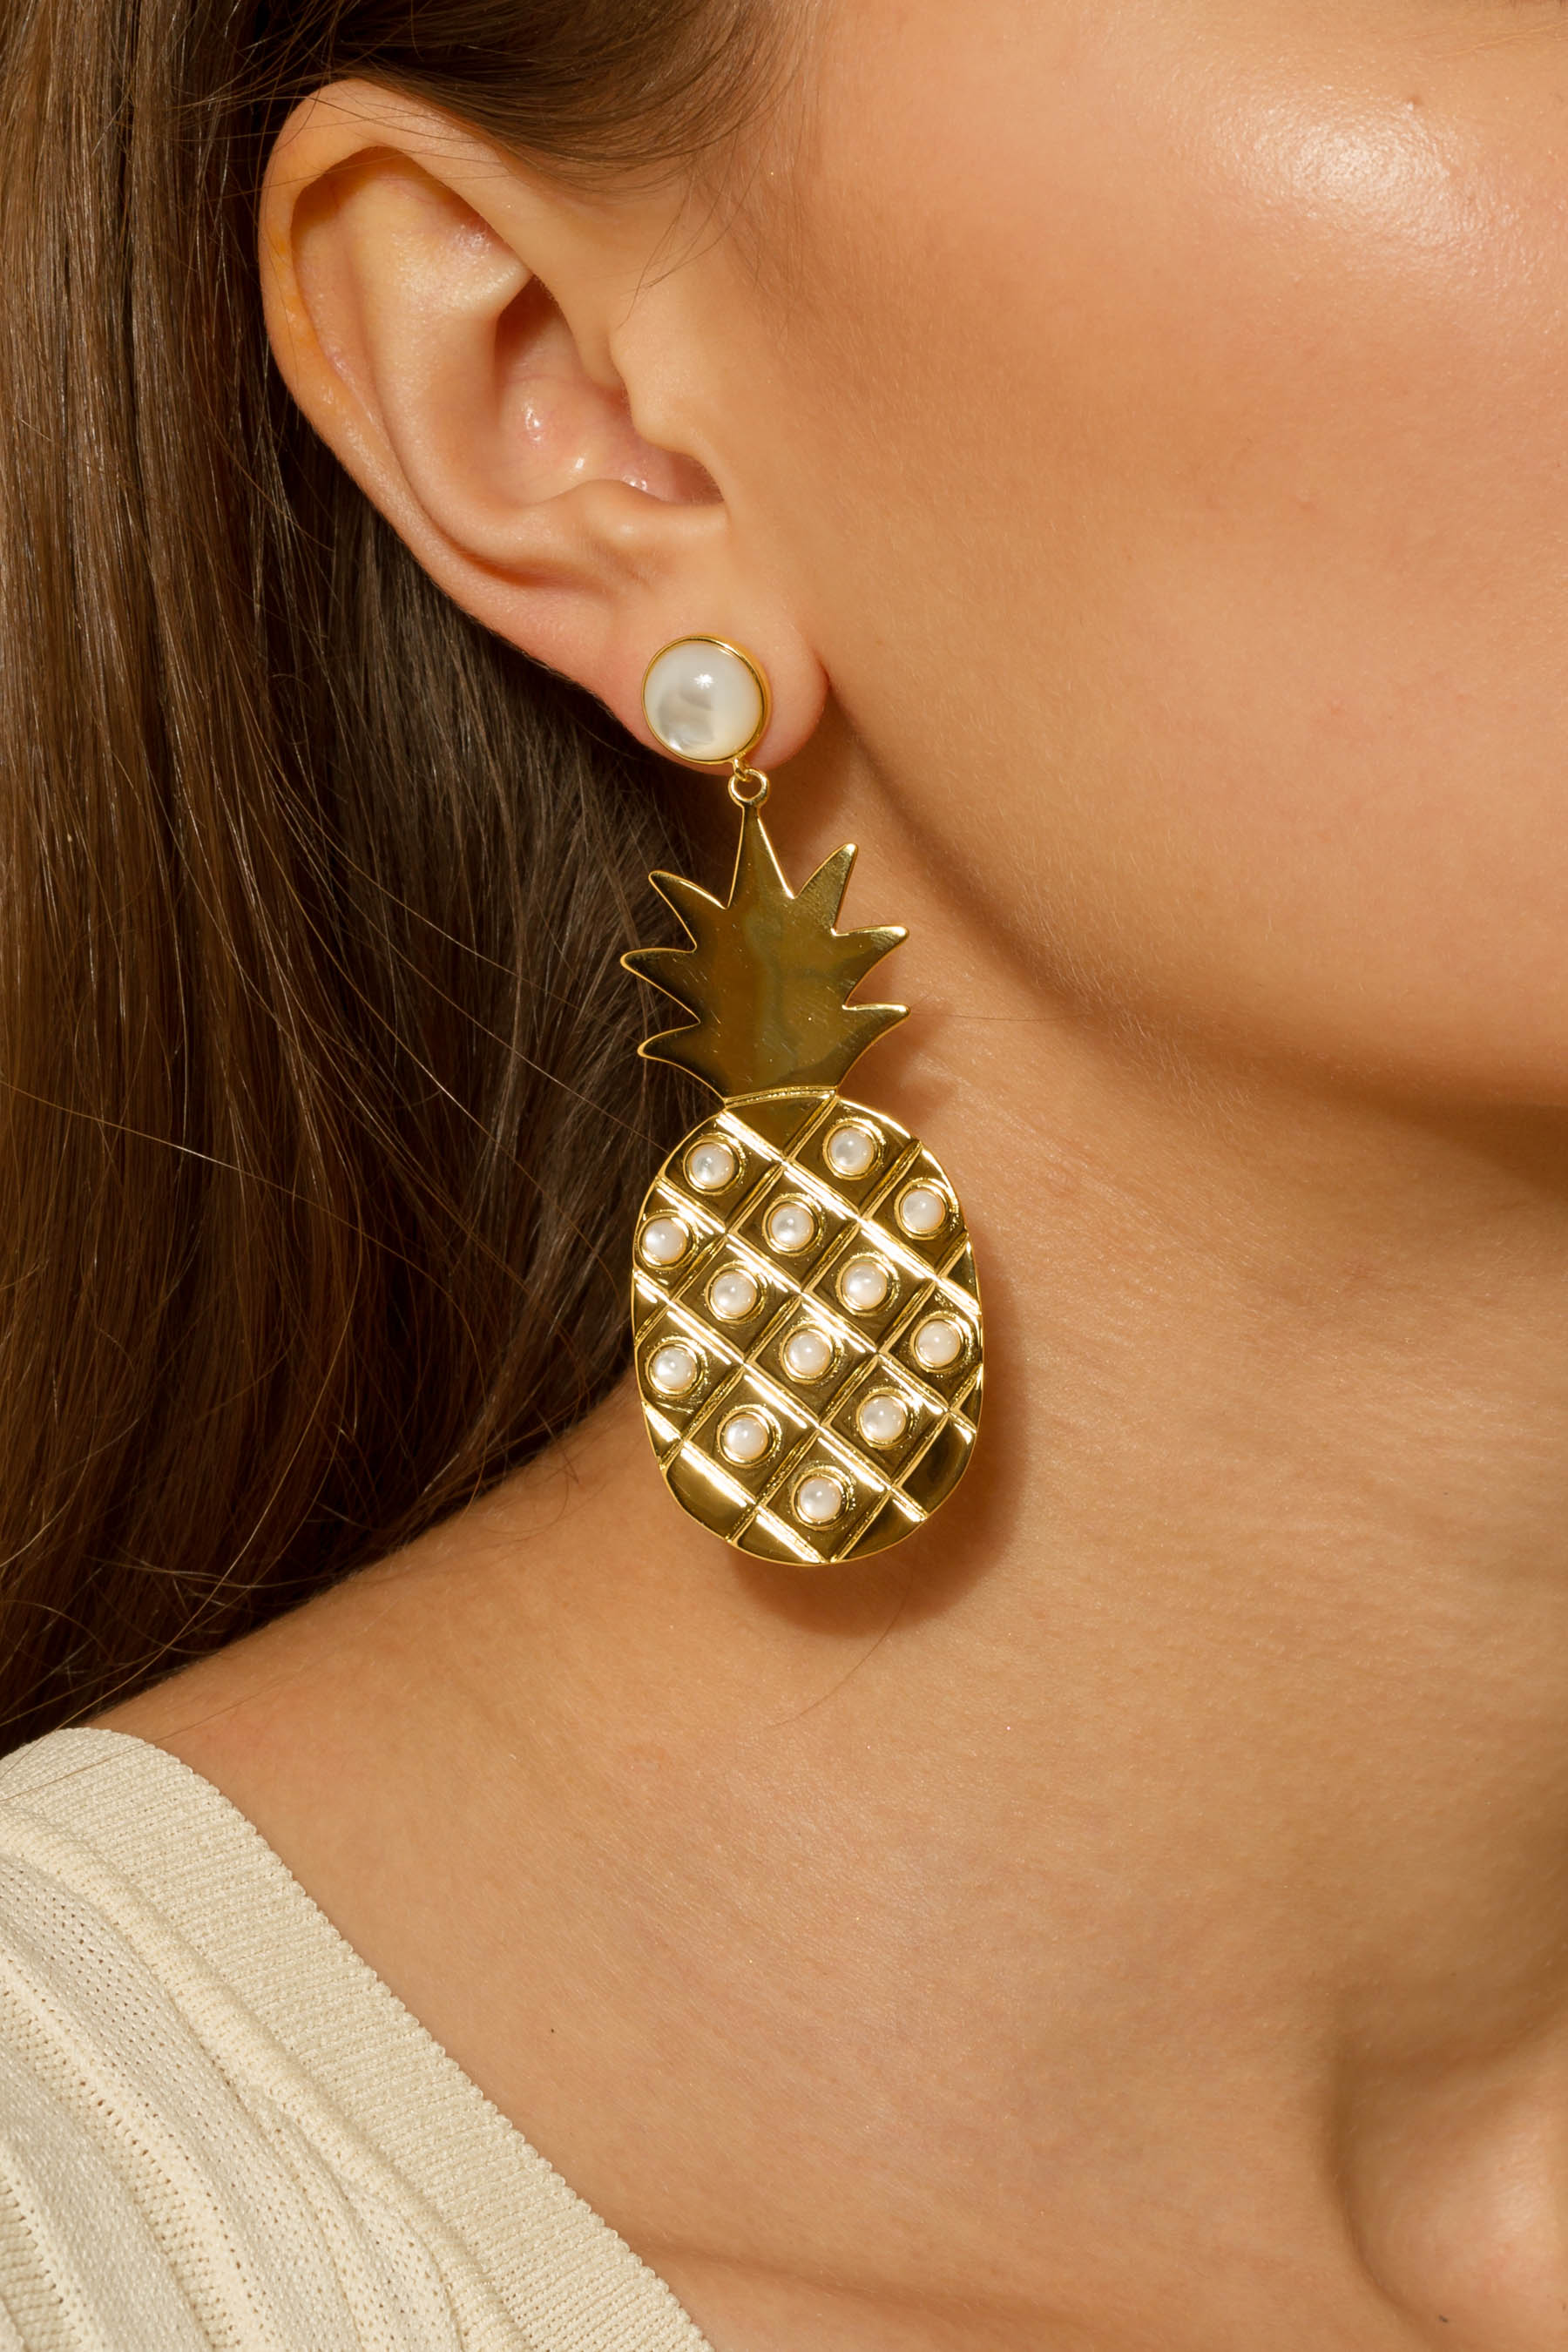 Piña Earrings